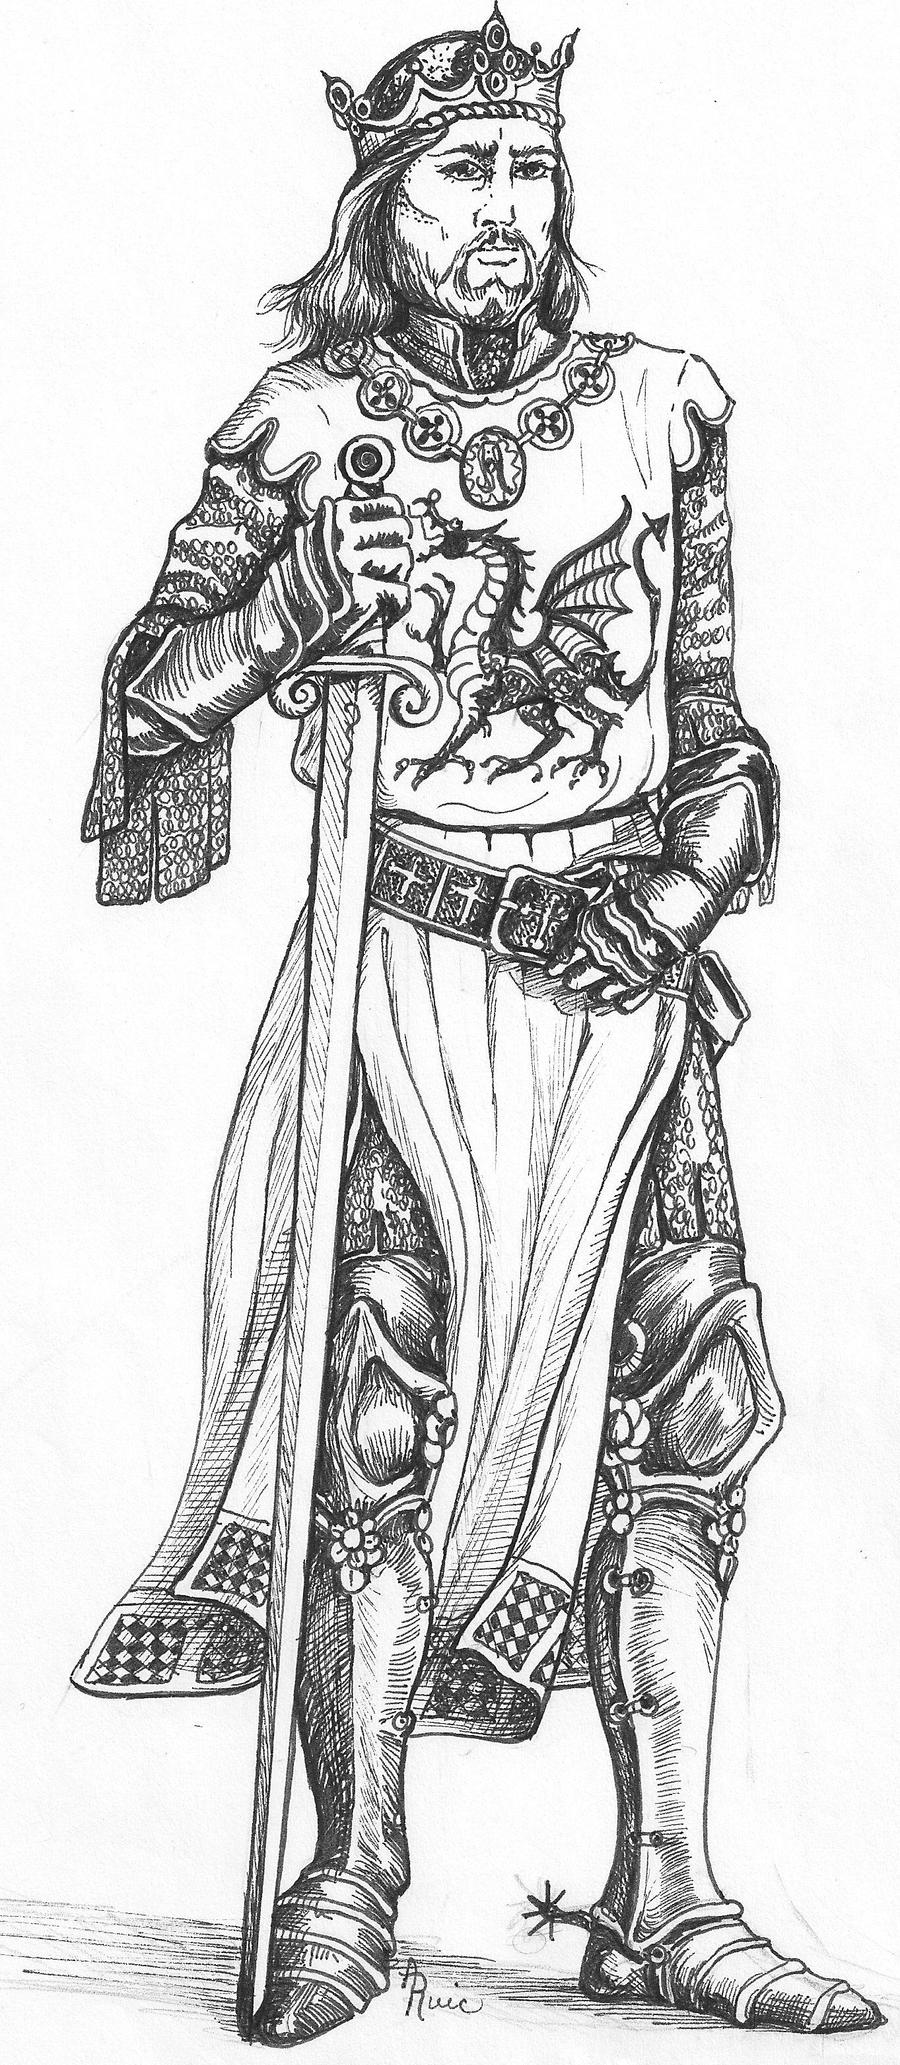 King Arthur Pen Dragon By Anitaburnevik On Deviantart Drawing King